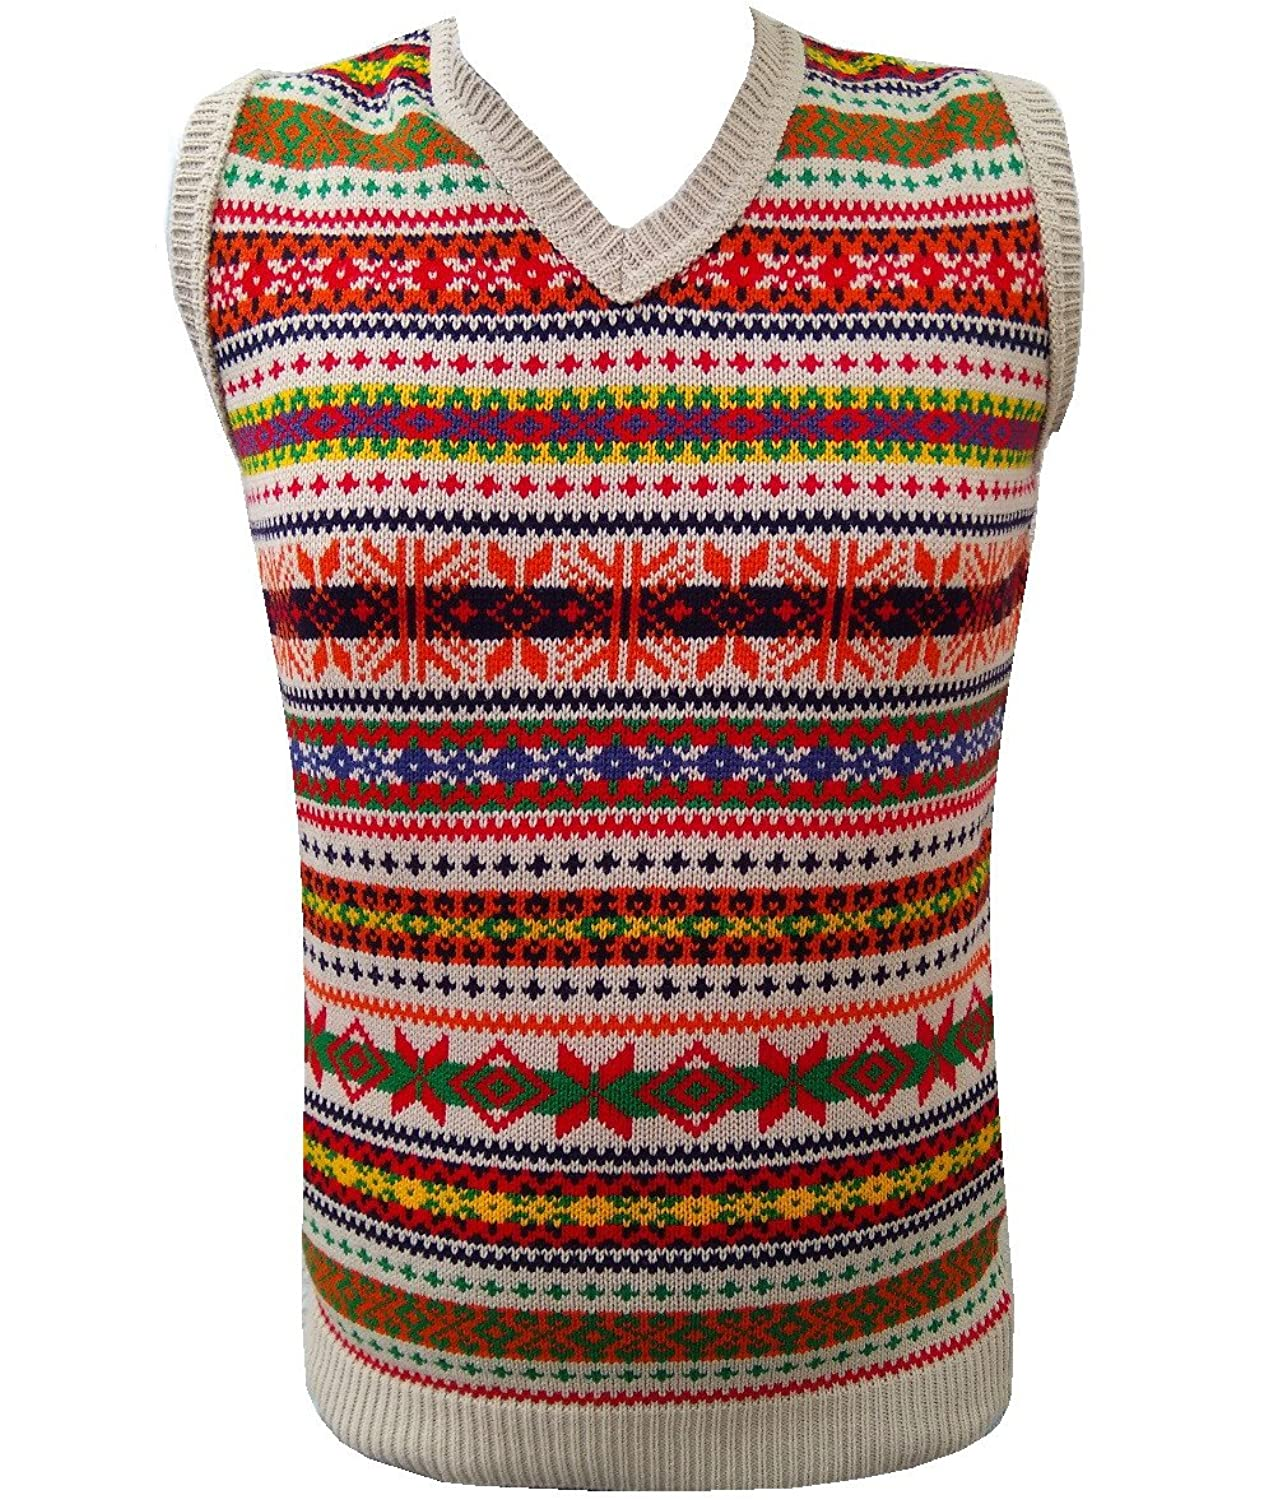 1920s Men's Clothing London Knitwear Gallery Retro Vintage Knitwear Tanktop Sleeveless Golf Sweater £19.99 AT vintagedancer.com